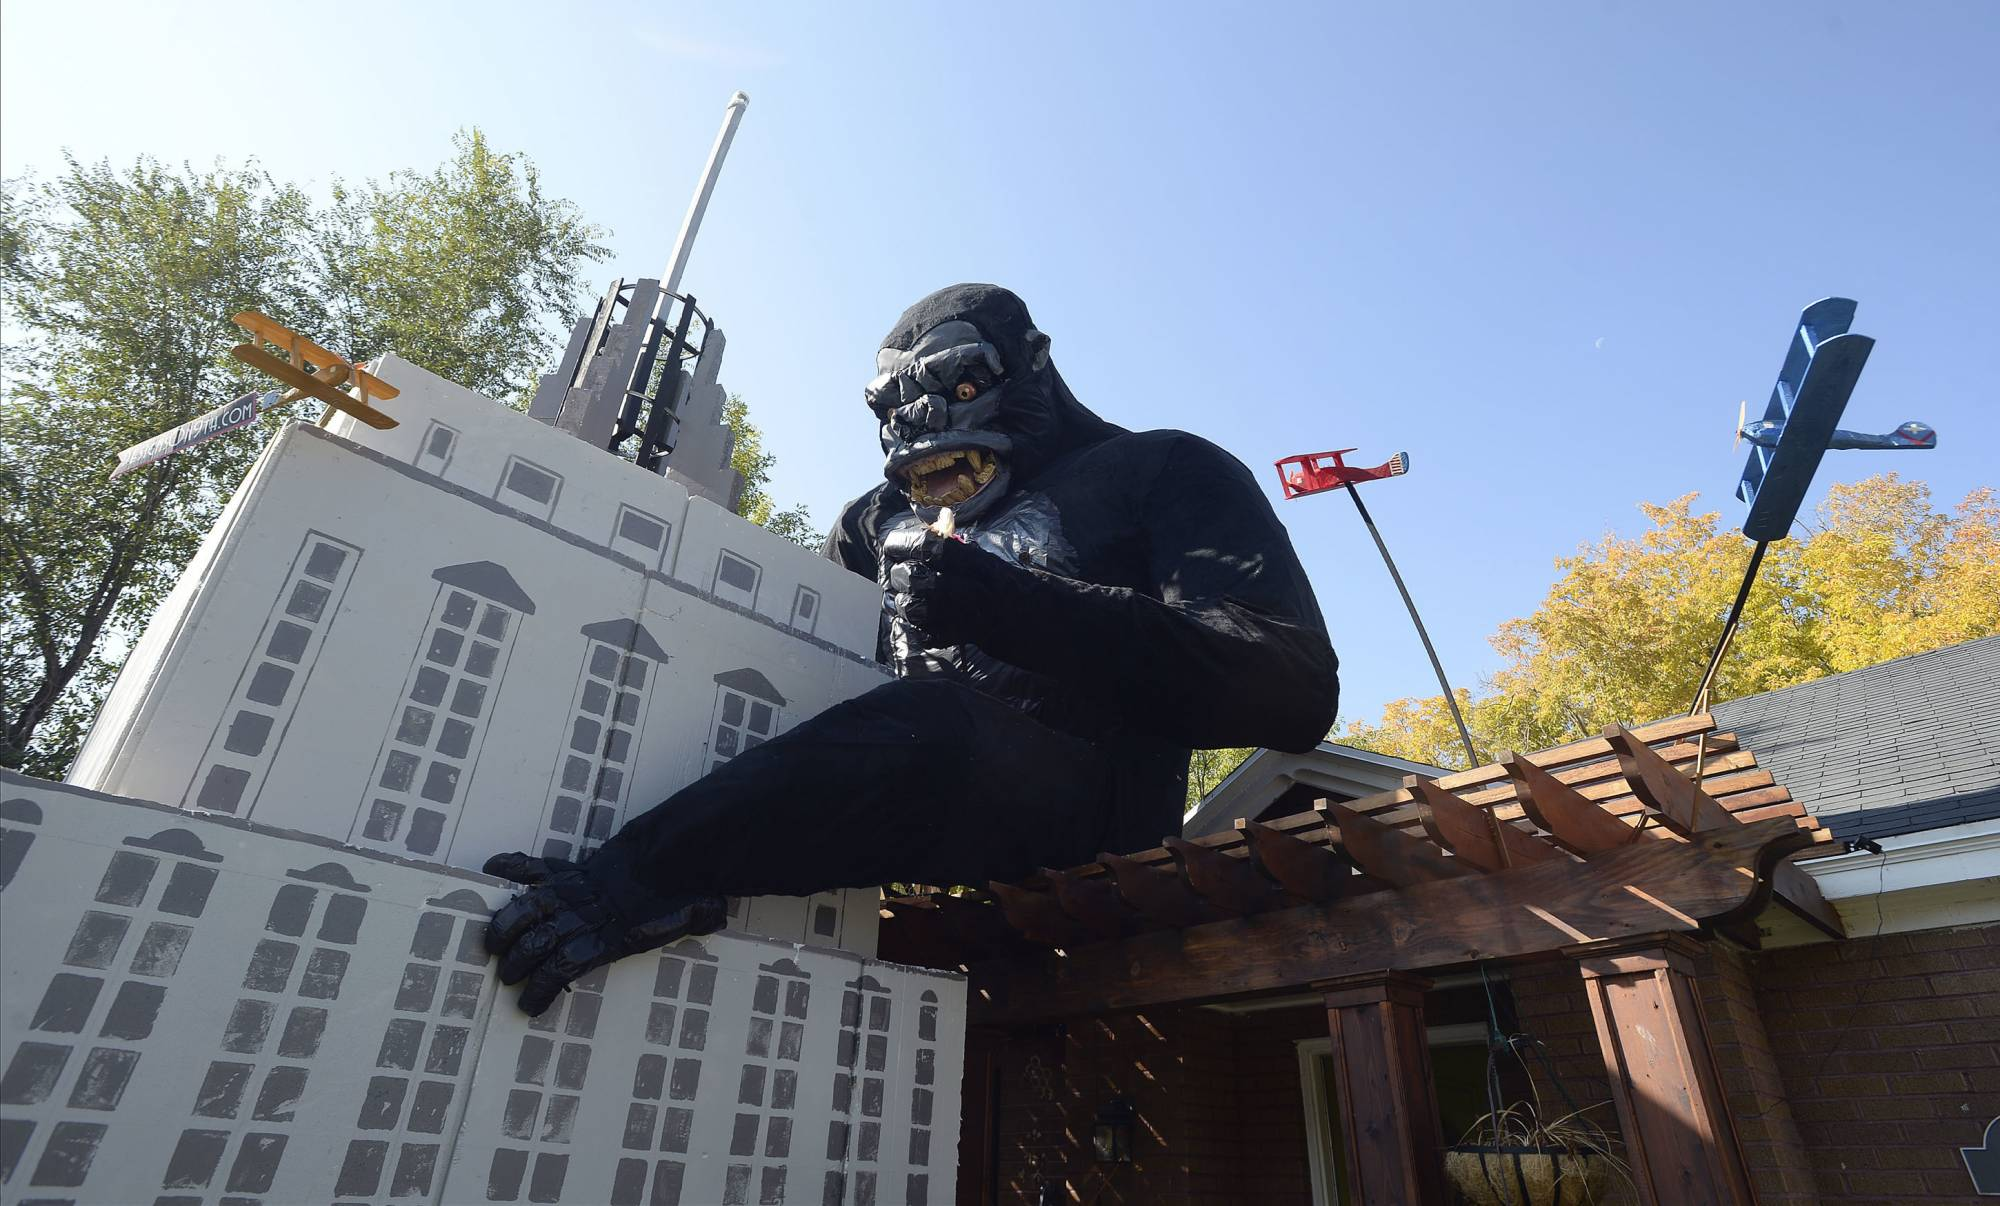 Salt Lake City man decorates house with a King Kong display | WTOP